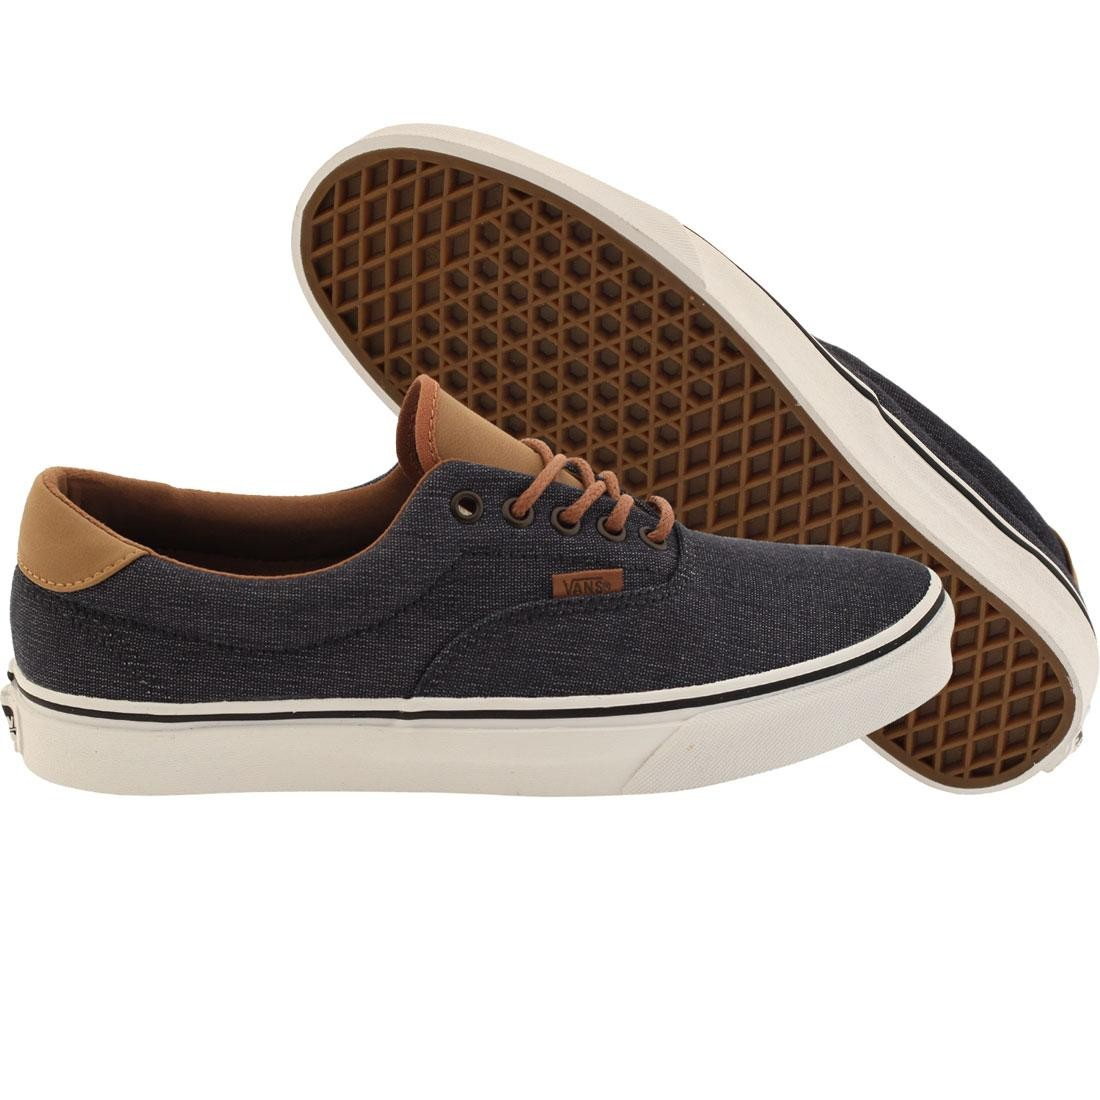 6b62f64a63 Vans Men Era 59 - Denim navy